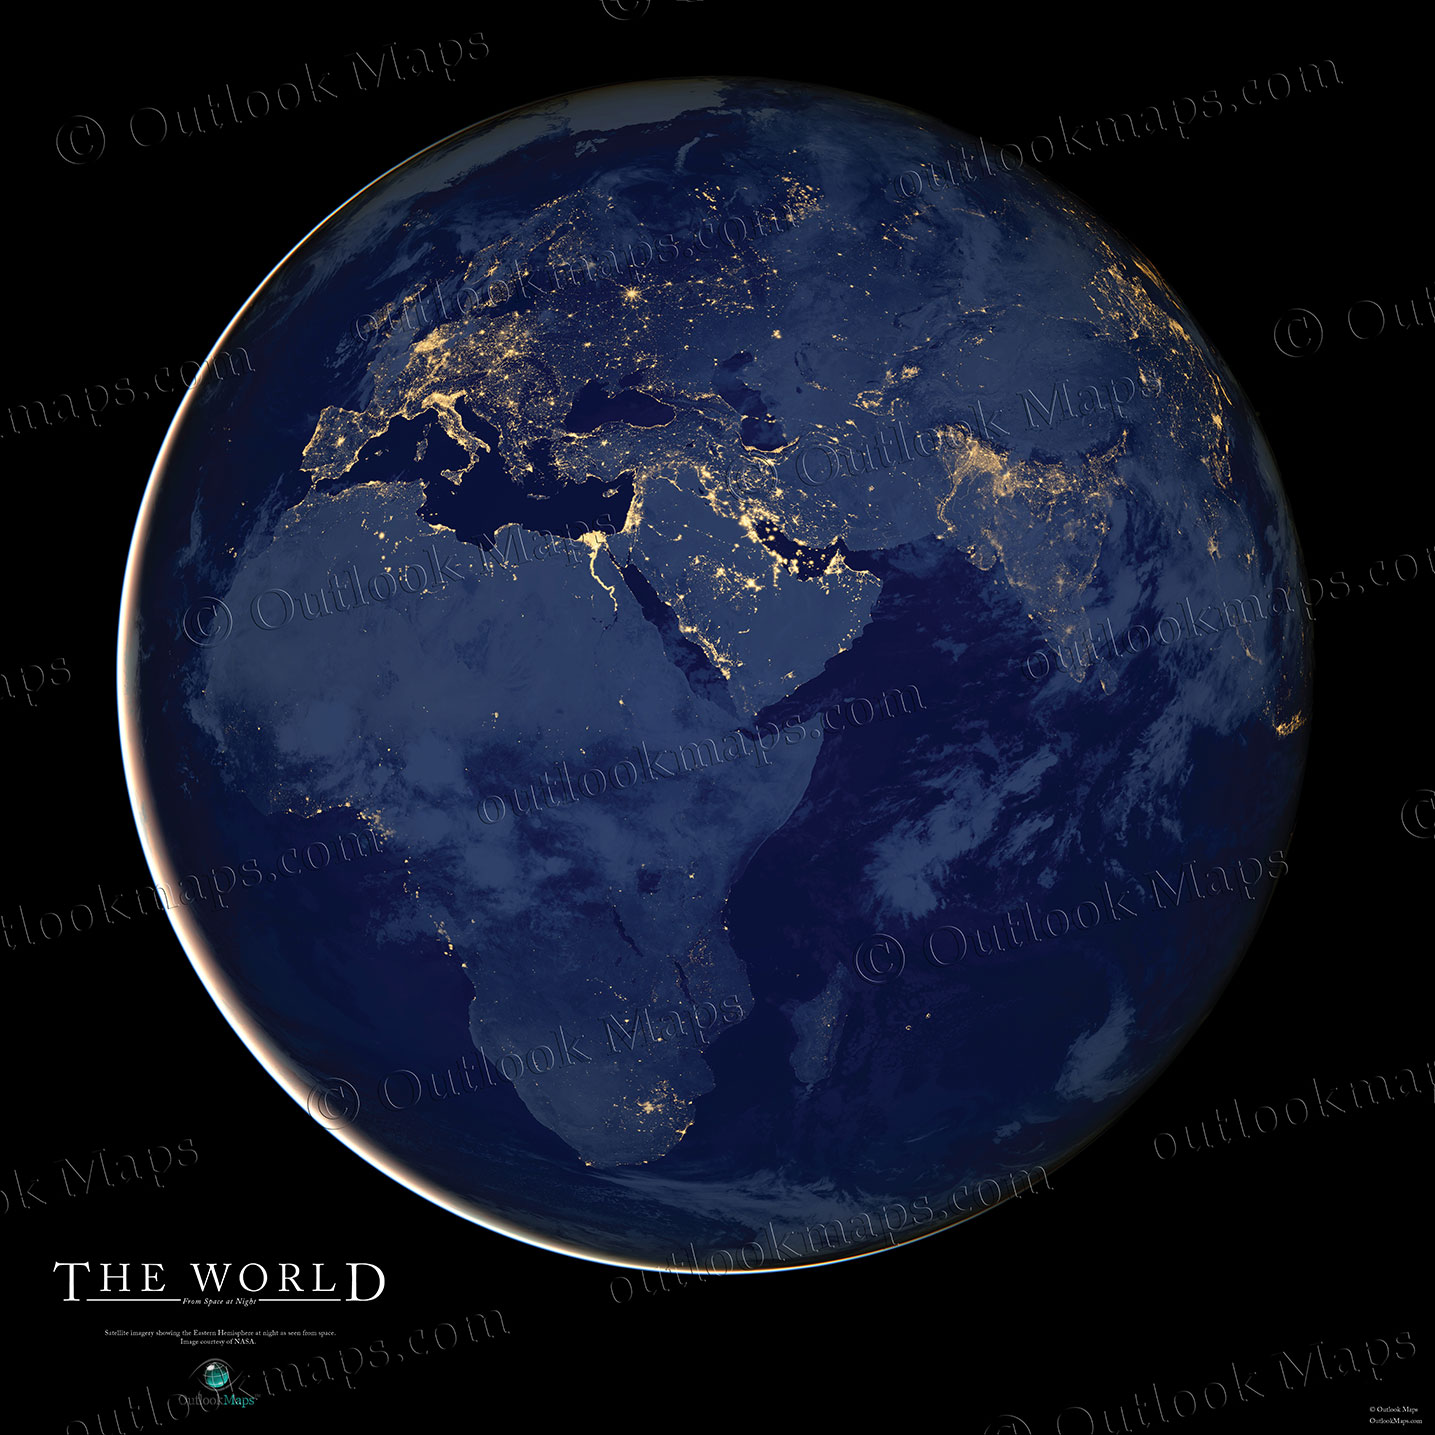 Earth at night poster black marble world118 black marble poster of earth at night map type gumiabroncs Images